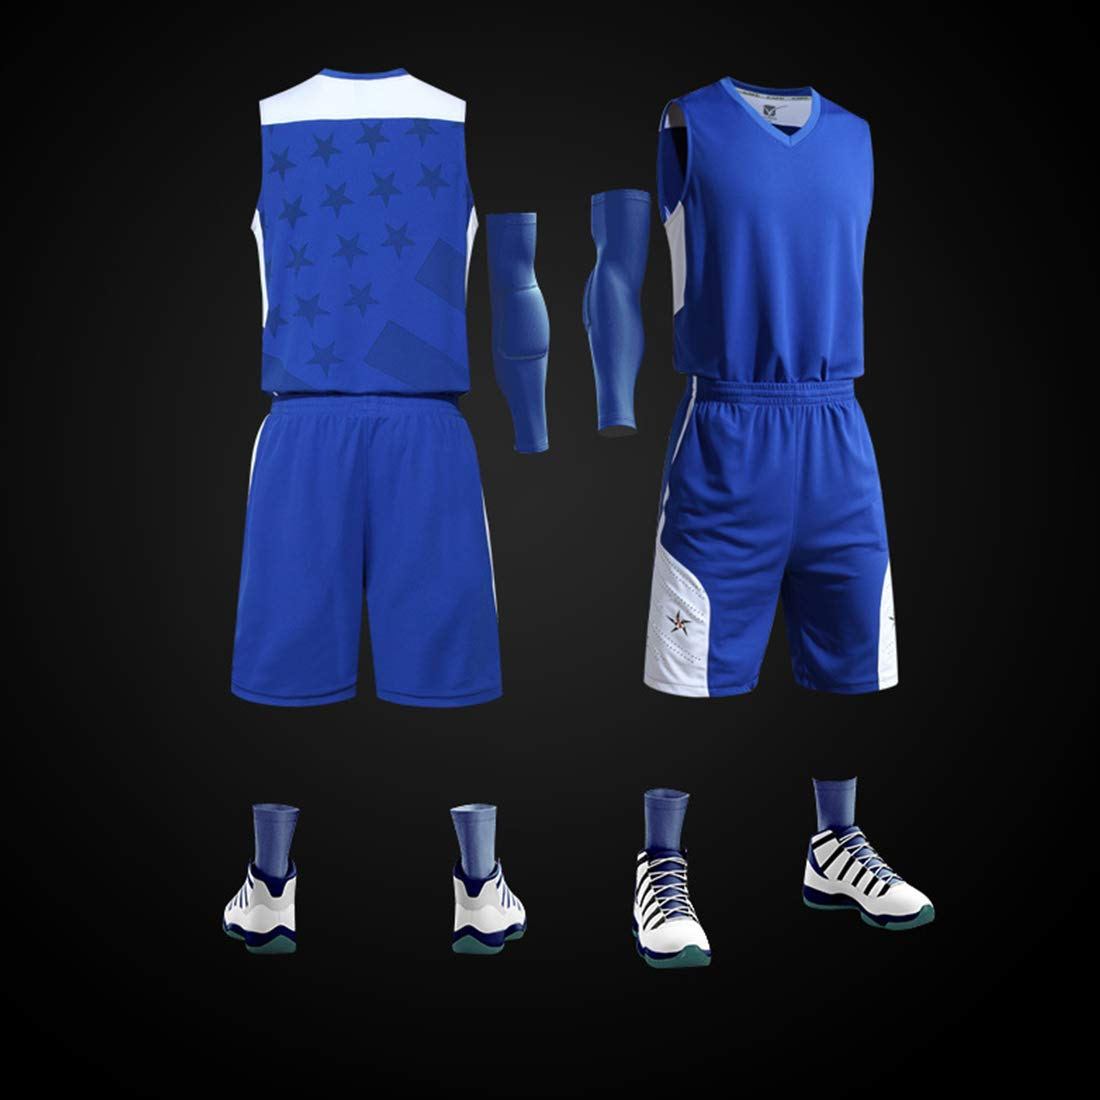 GWELL Herren Jungen Basketballtrikot Set Trikot /& Shorts Basketballanzug Basketball Jersey Uniform